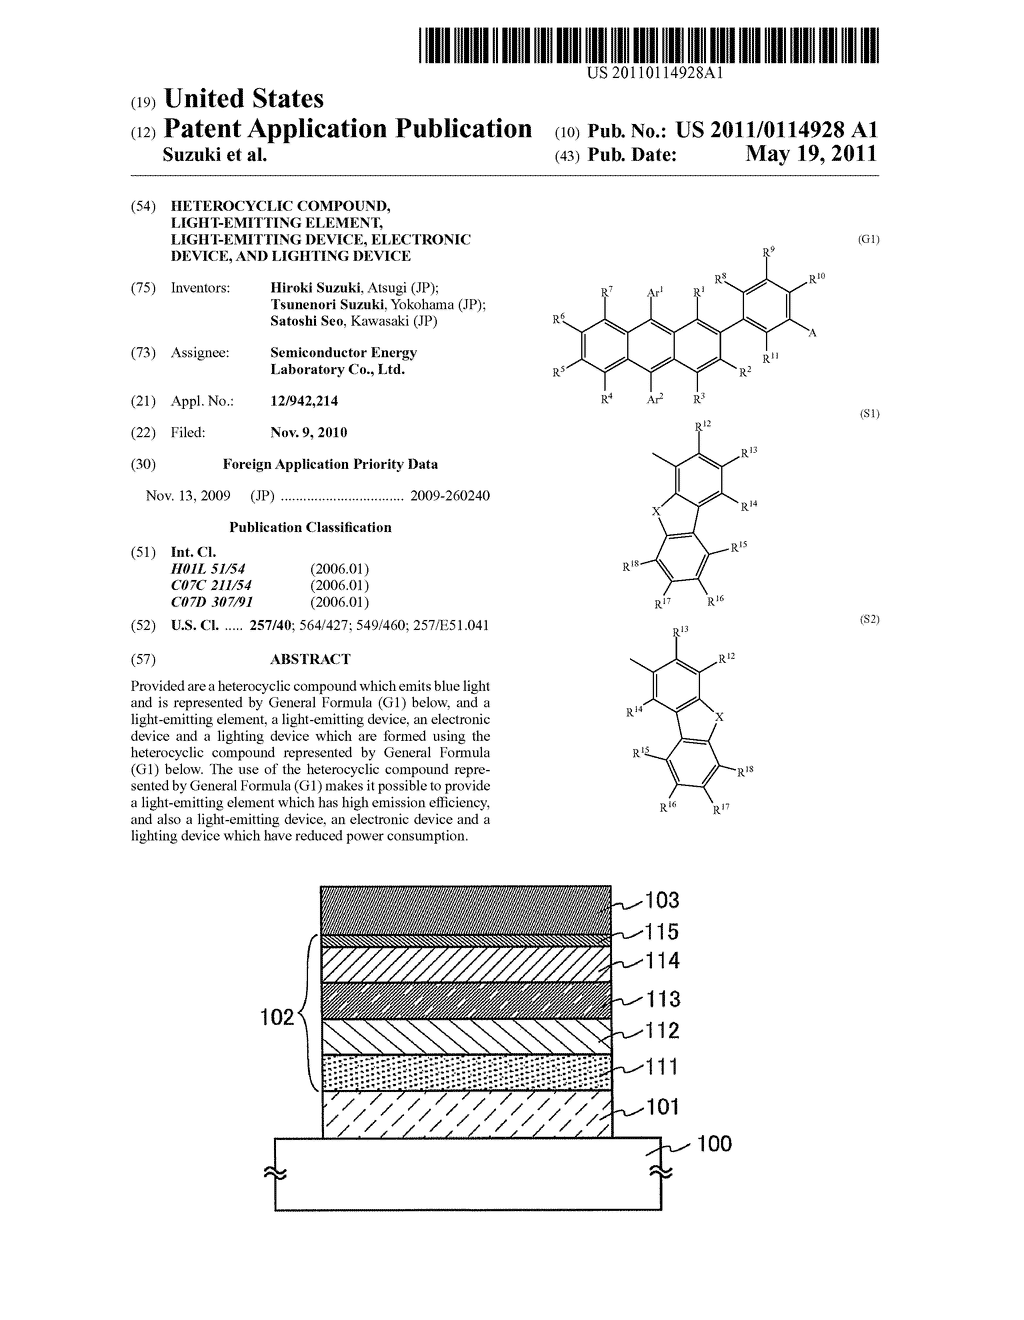 Heterocyclic Compound, Light-Emitting Element, Light-Emitting Device, Electronic Device, and Lighting Device - diagram, schematic, and image 01